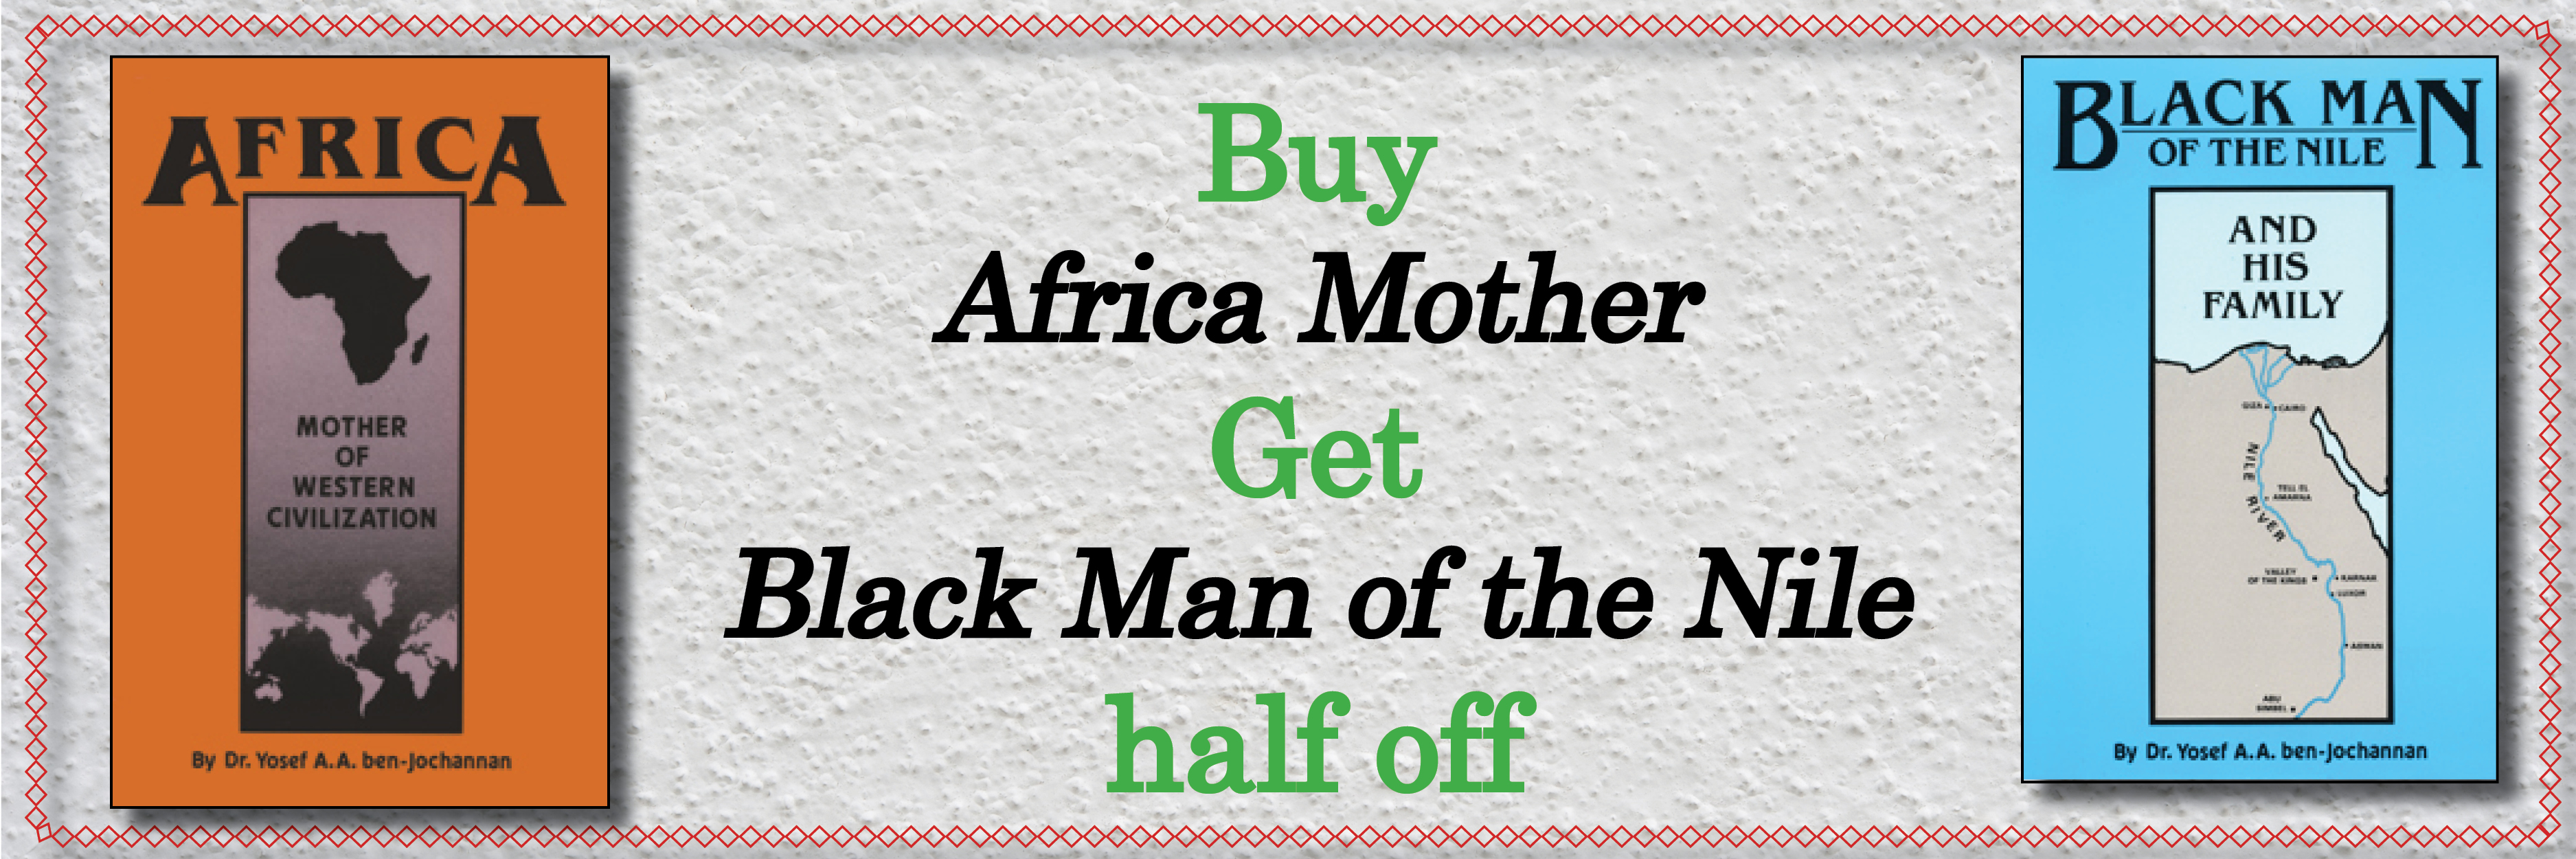 Buy Africa Mother get Black Man half off